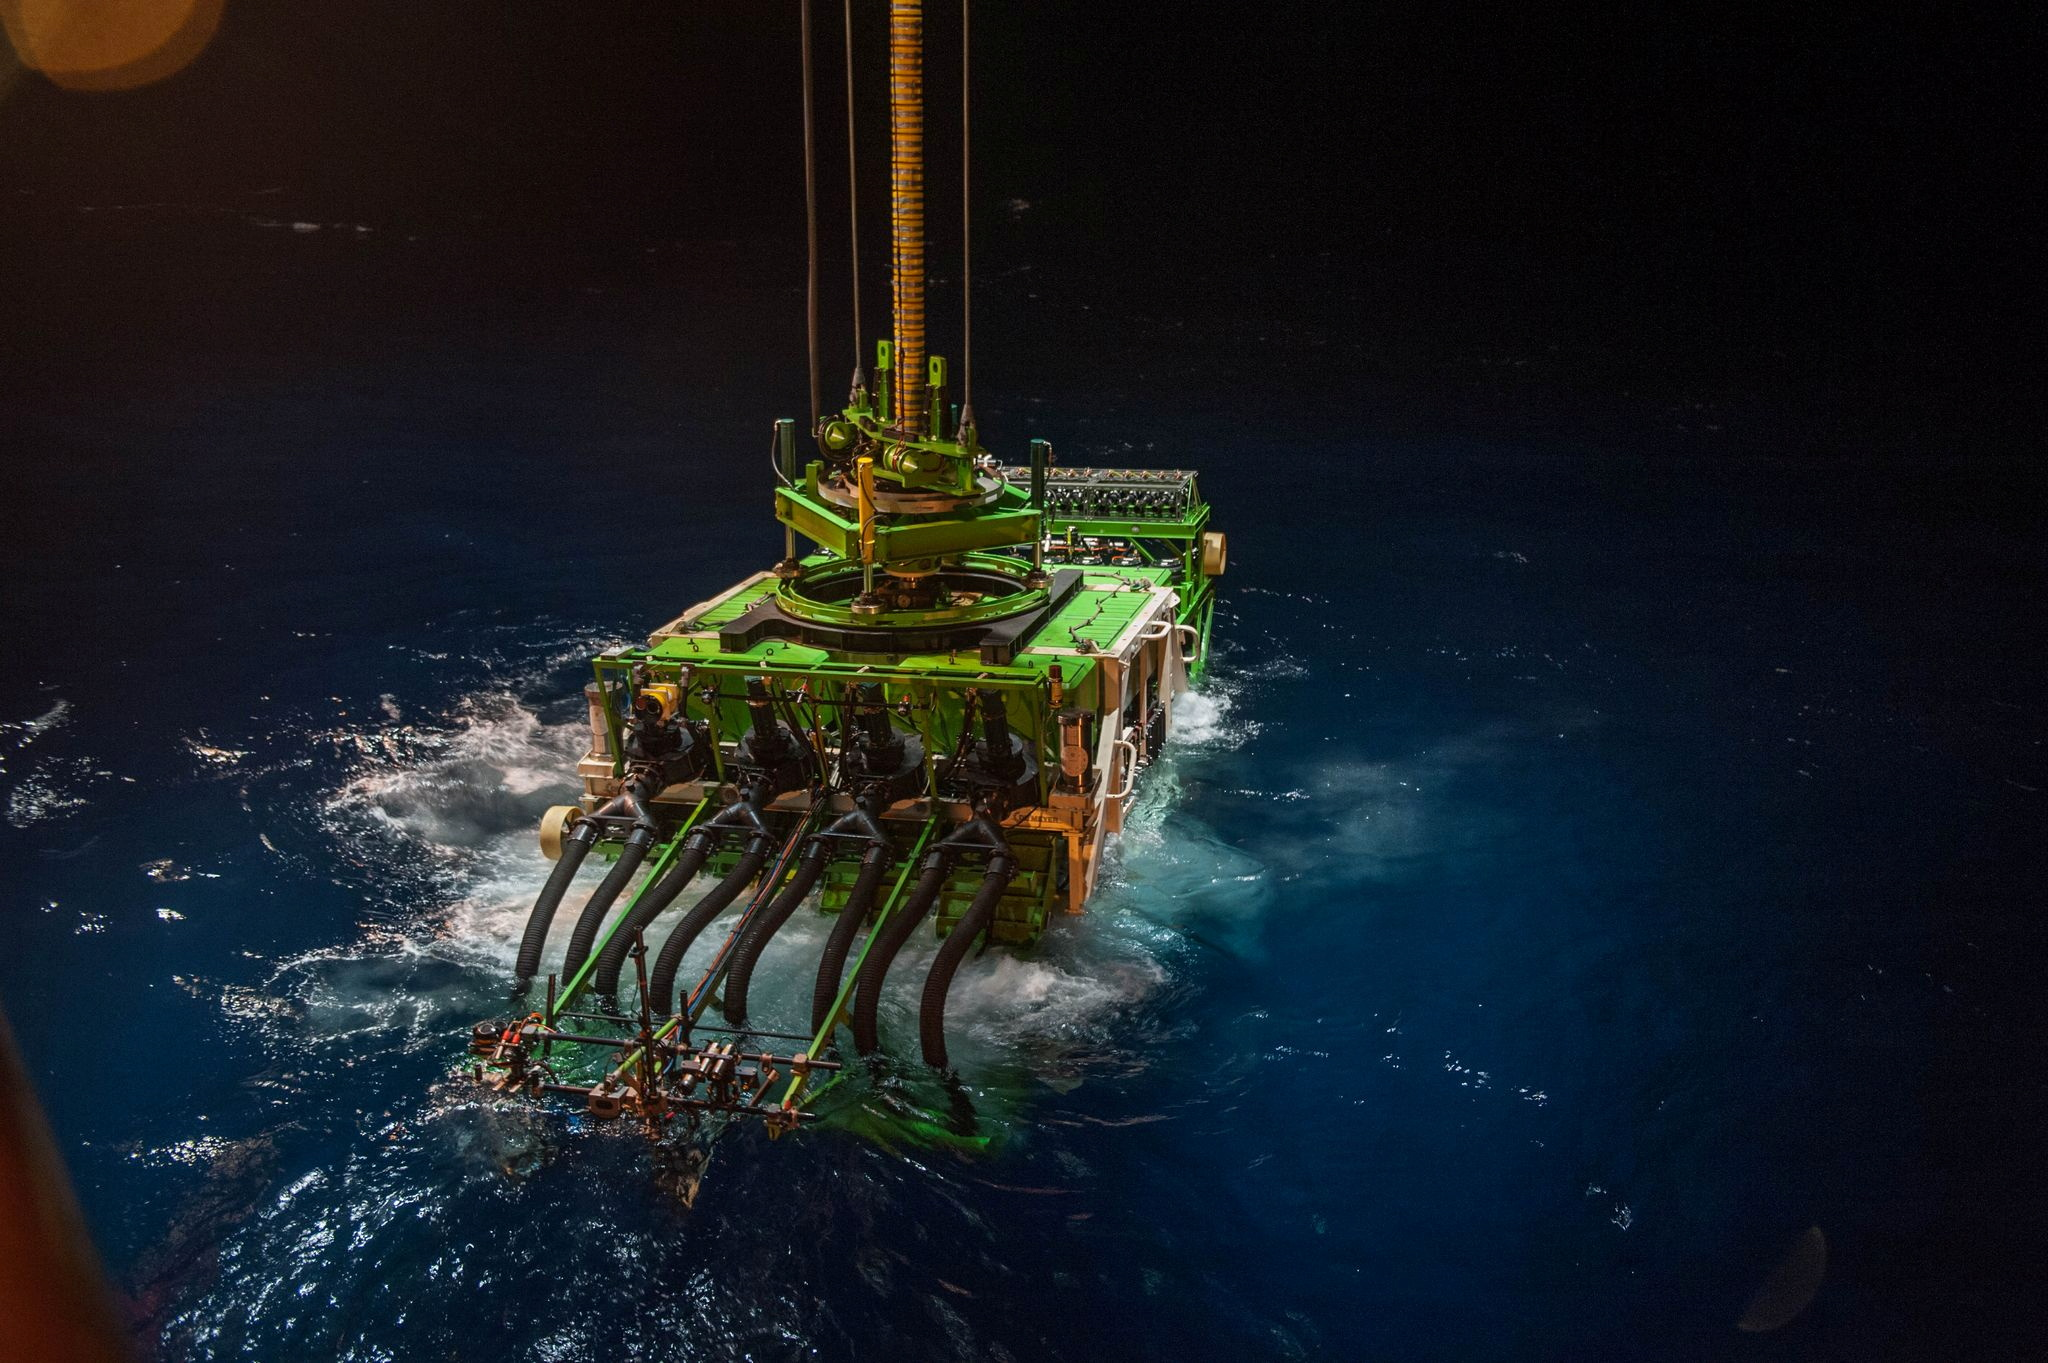 Patania II, a 25-tonne seabed mining robot, is lowered into the Pacific Ocean to begin a descent to the sea floor, in the Clarion Clipperton Zone of the Pacific Ocean, April 2021. GSR/Handout via REUTERS